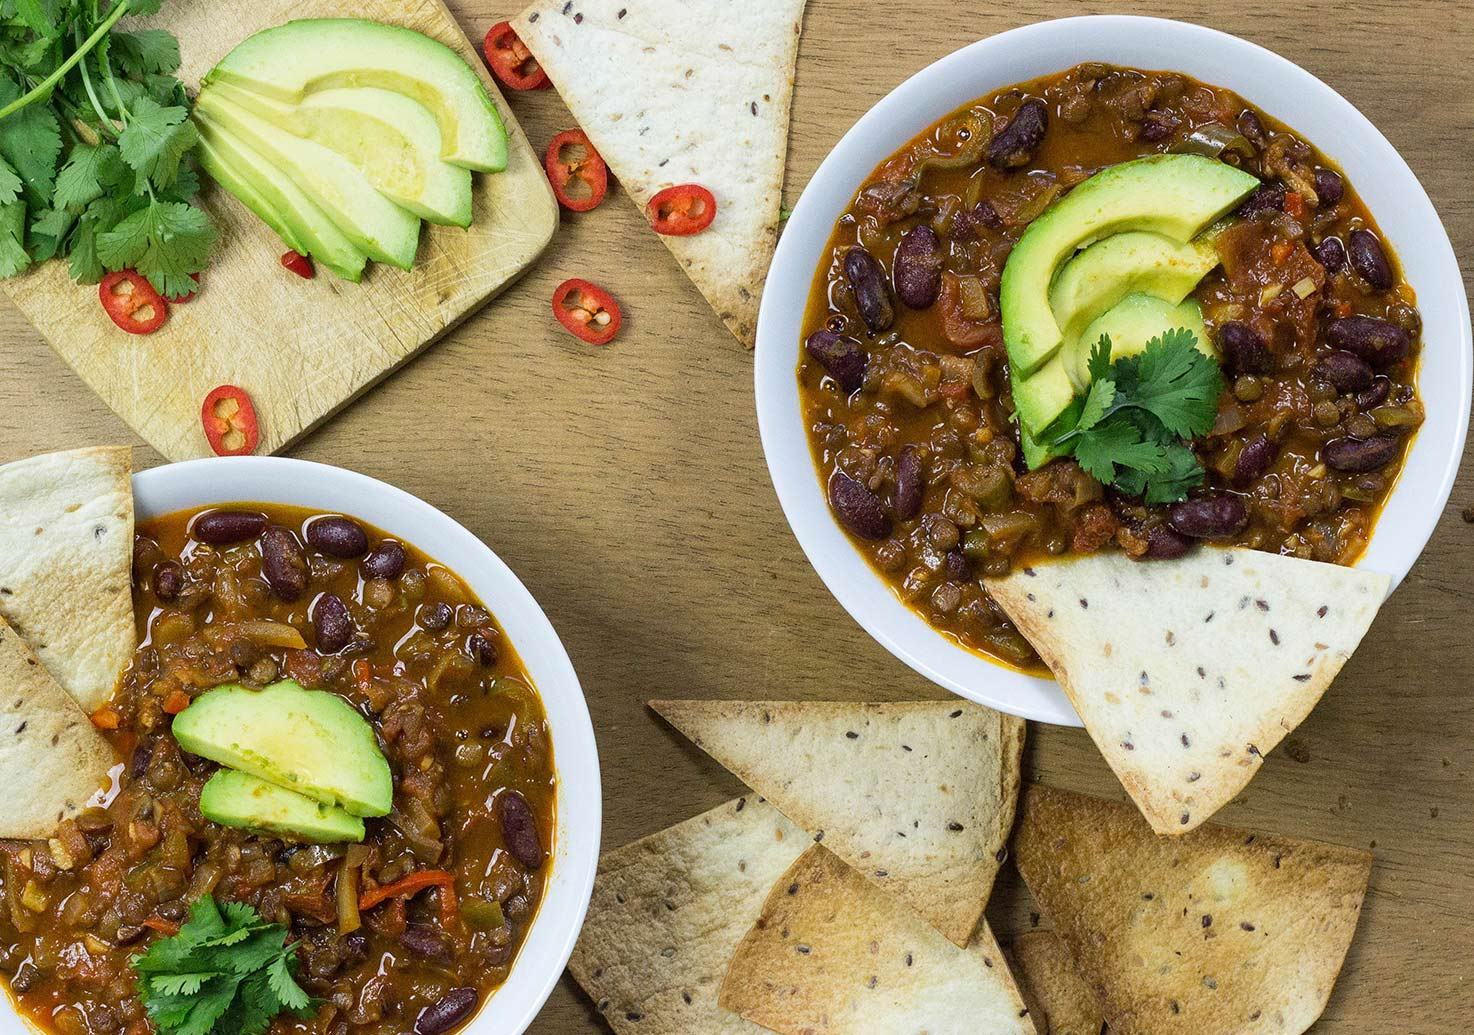 Meatless chili con carne is served in two bowls with tortillas, and slices of avocado | Hurry The Food Up